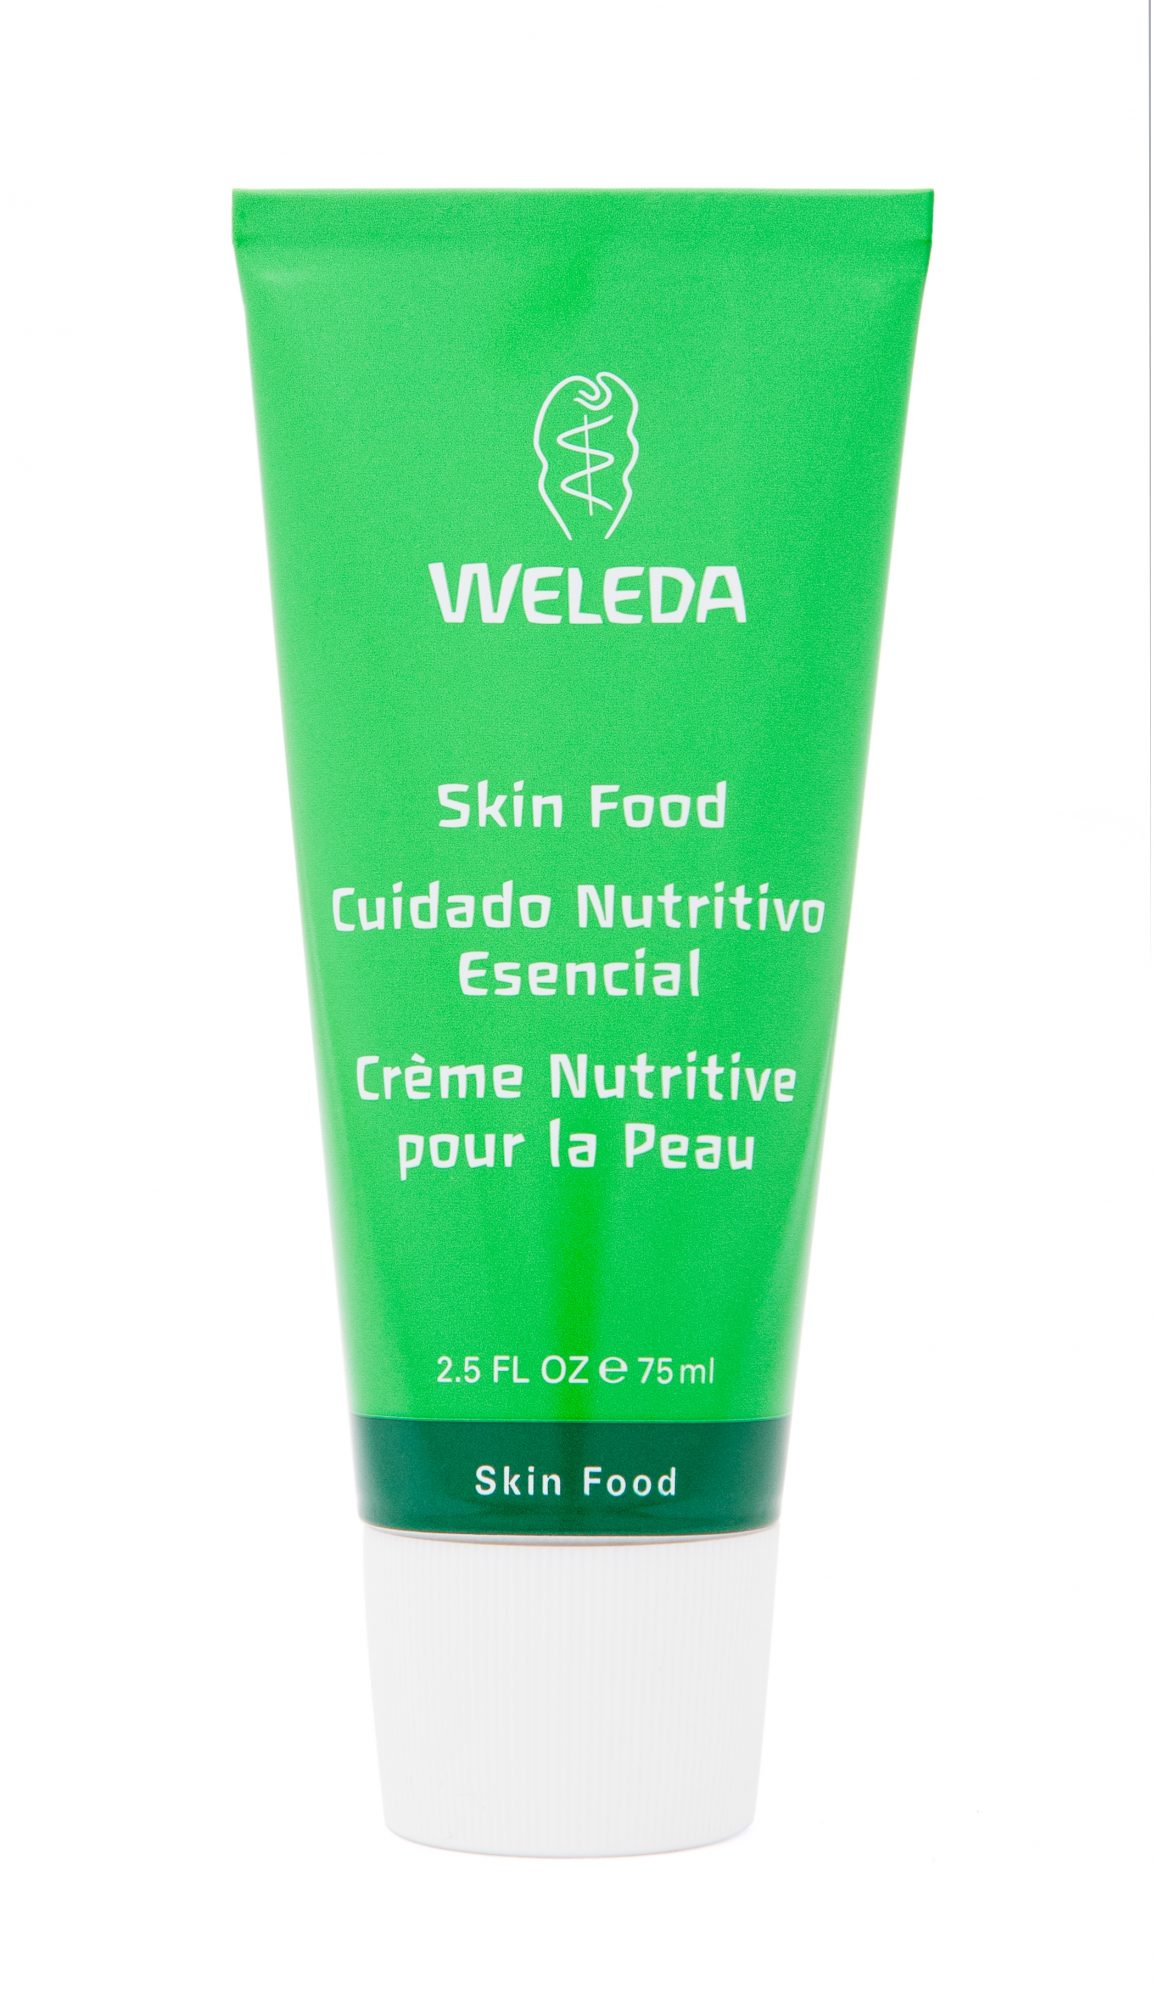 Weleda_SkinFood_DryAndRough_2.5floz_002